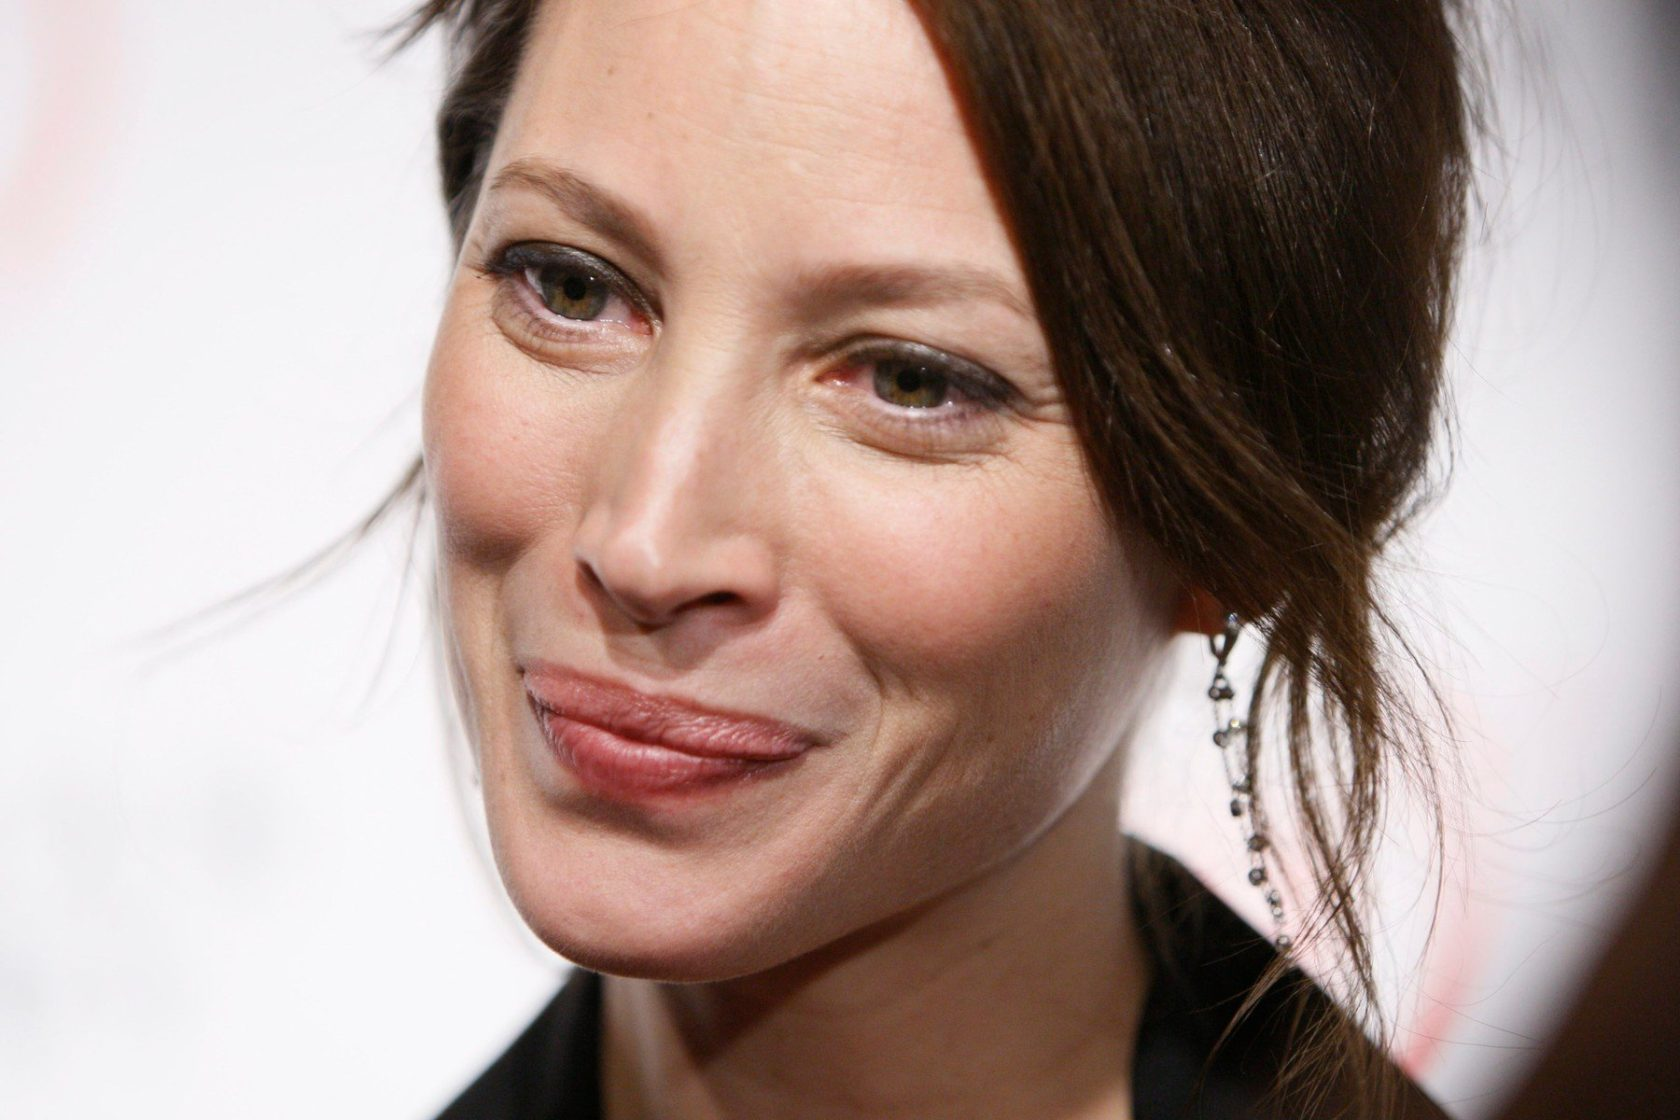 D 82866-10 Christy Turlington. . Christy Turlington attends Sotheby's (Red) Auction on Valentine's day to raise money for HIV/AIDS charities in Africa on 14/02/08, New York., Image: 54041855, License: Rights-managed, Restrictions: NOT FOR SALE IN: USA, FINLAND, GERMANY, ITALY, RUSSIA, SWEDEN, NORWAY, SPAIN, JAPAN, FRANCE, NETHERLANDS AND SOUTH AFRICA., Model Release: no, Credit line: Profimedia, TEMP Camerapress